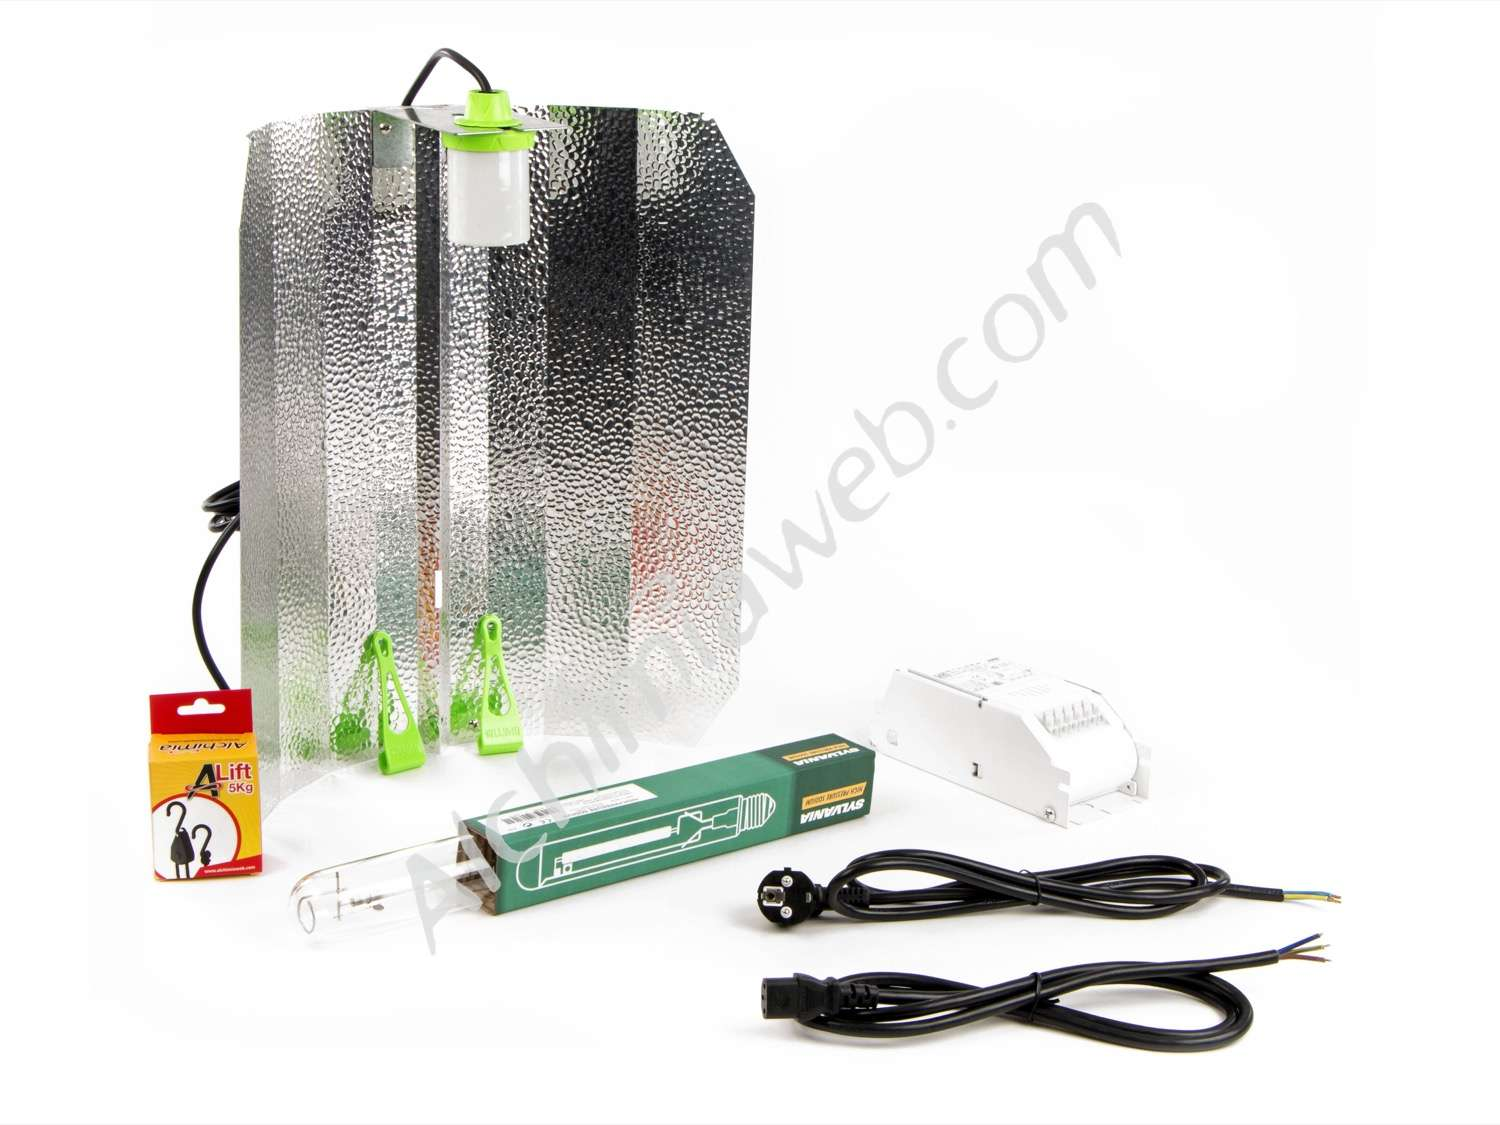 Complete lighting kit with magnetic ballast (Class 1)